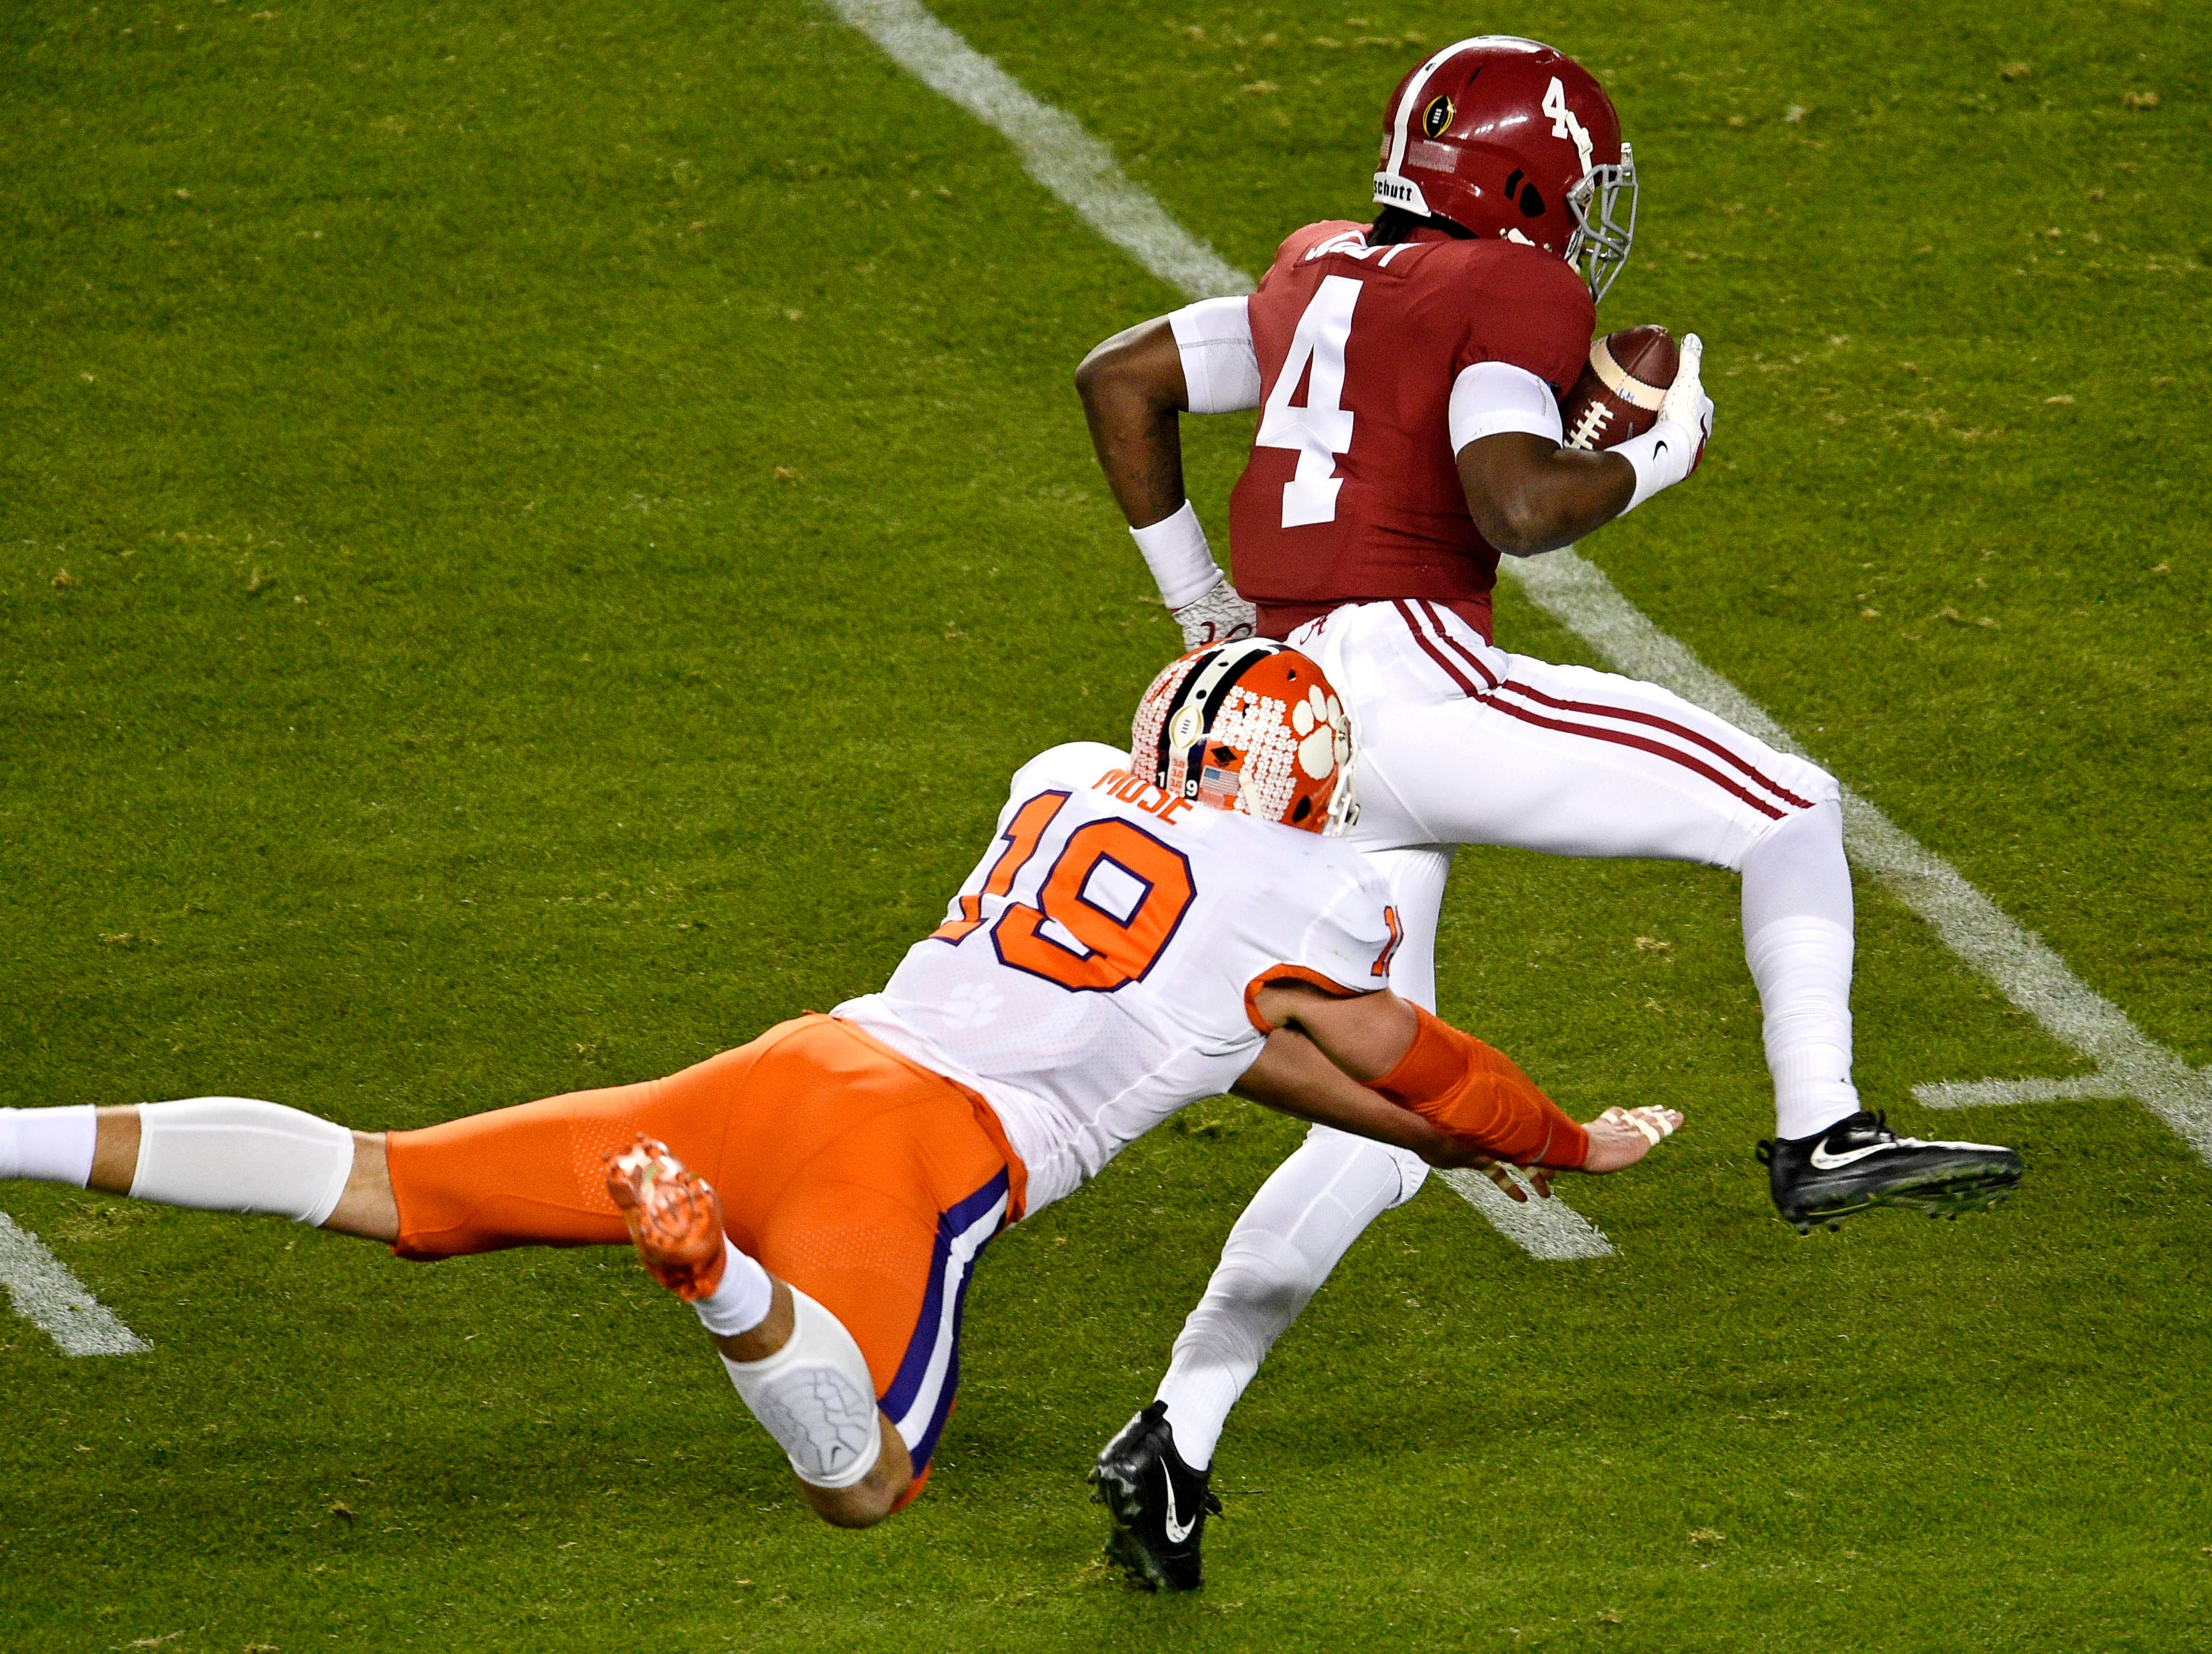 Alabama receiver Jerry Jeudy catches a touchdown pass in the first quarter.